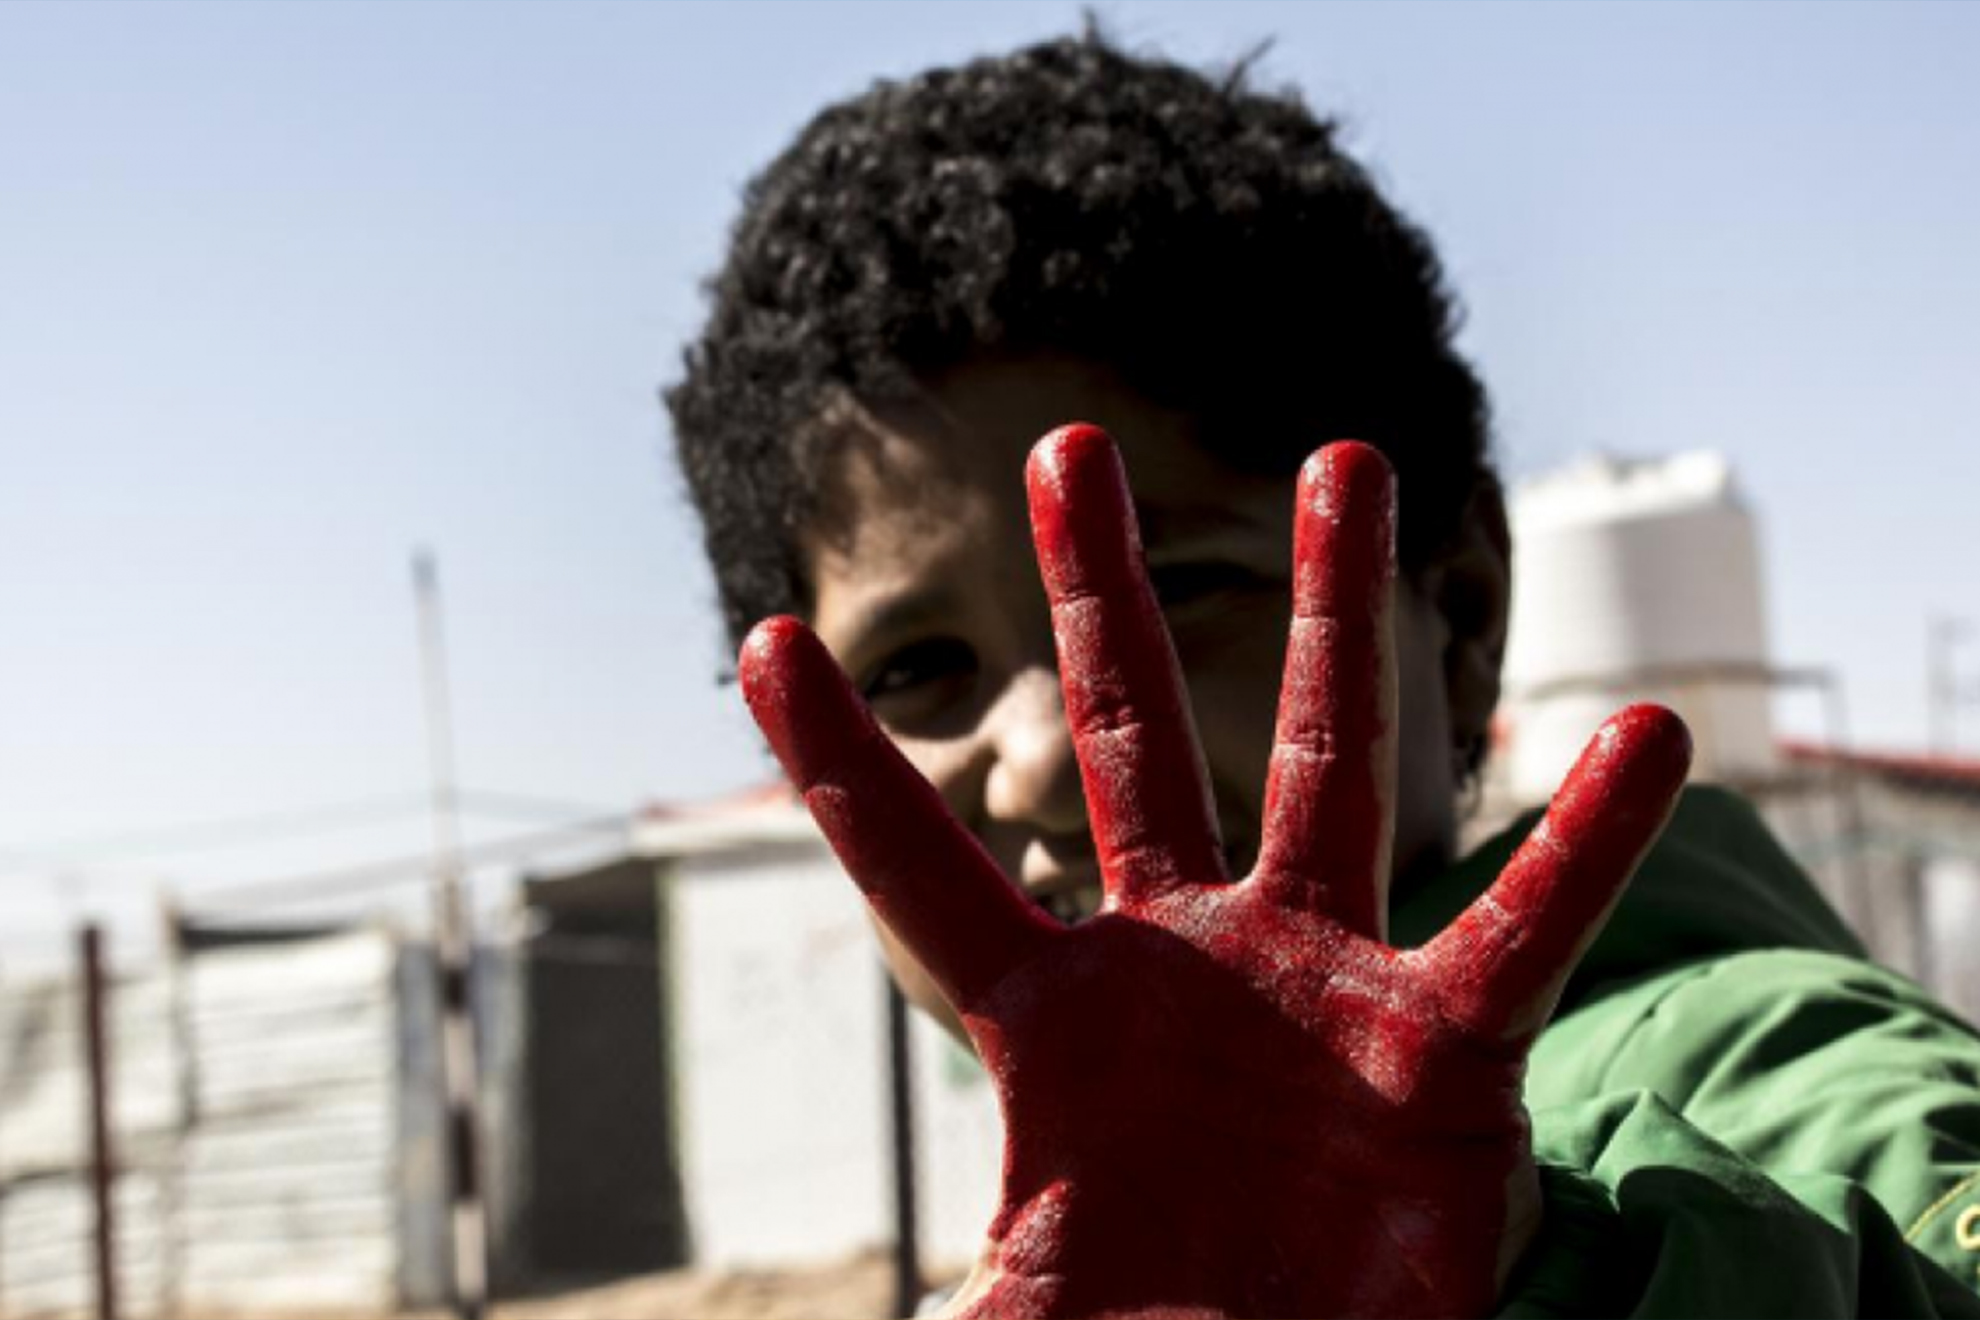 Participate in the Red Hand Day virtual event!